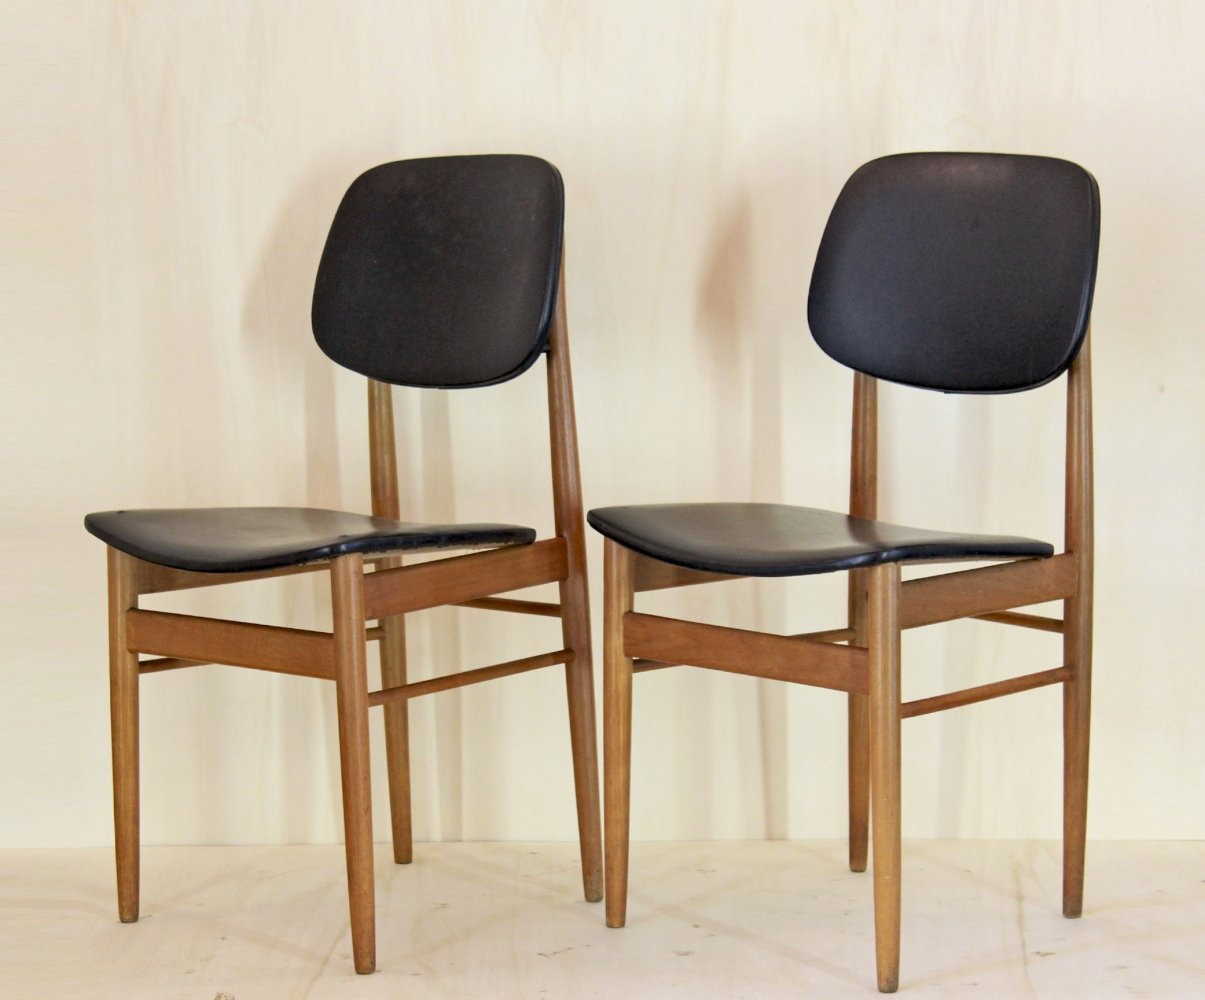 Pair of vintage dining chairs by Ico Parisi, 1950s